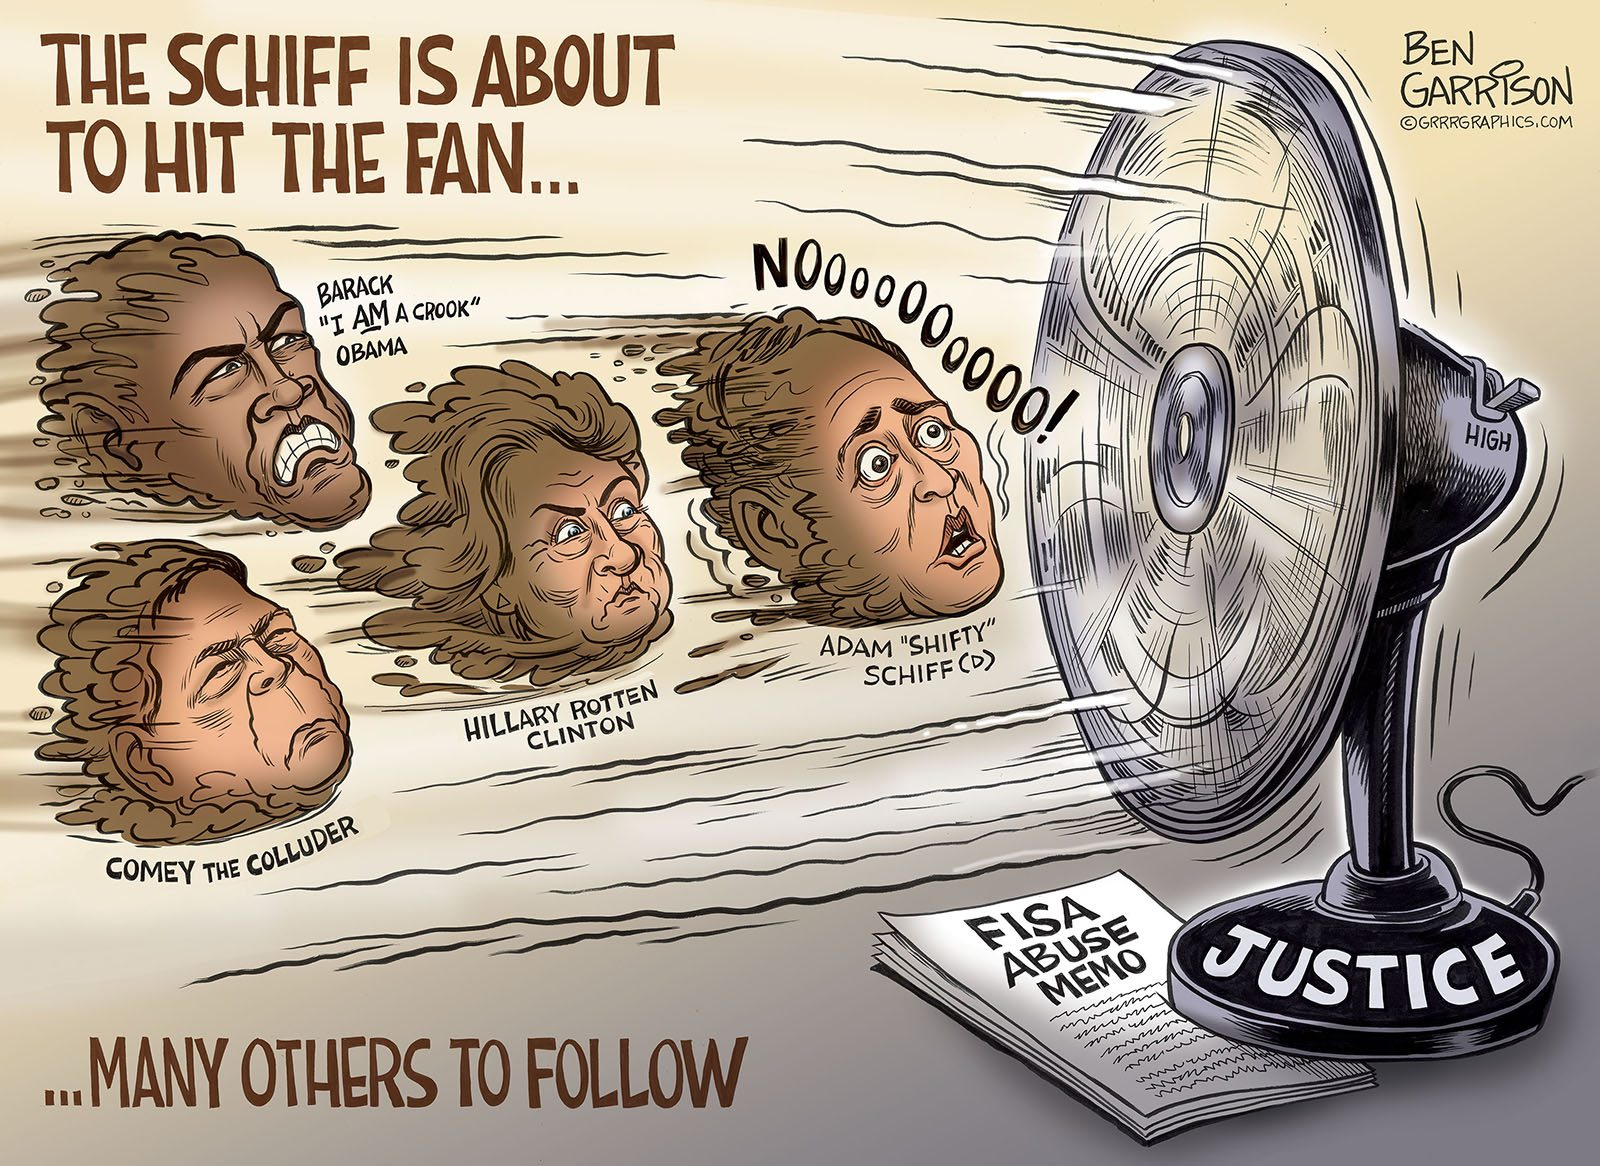 The Schiff is About to Hit the Fan